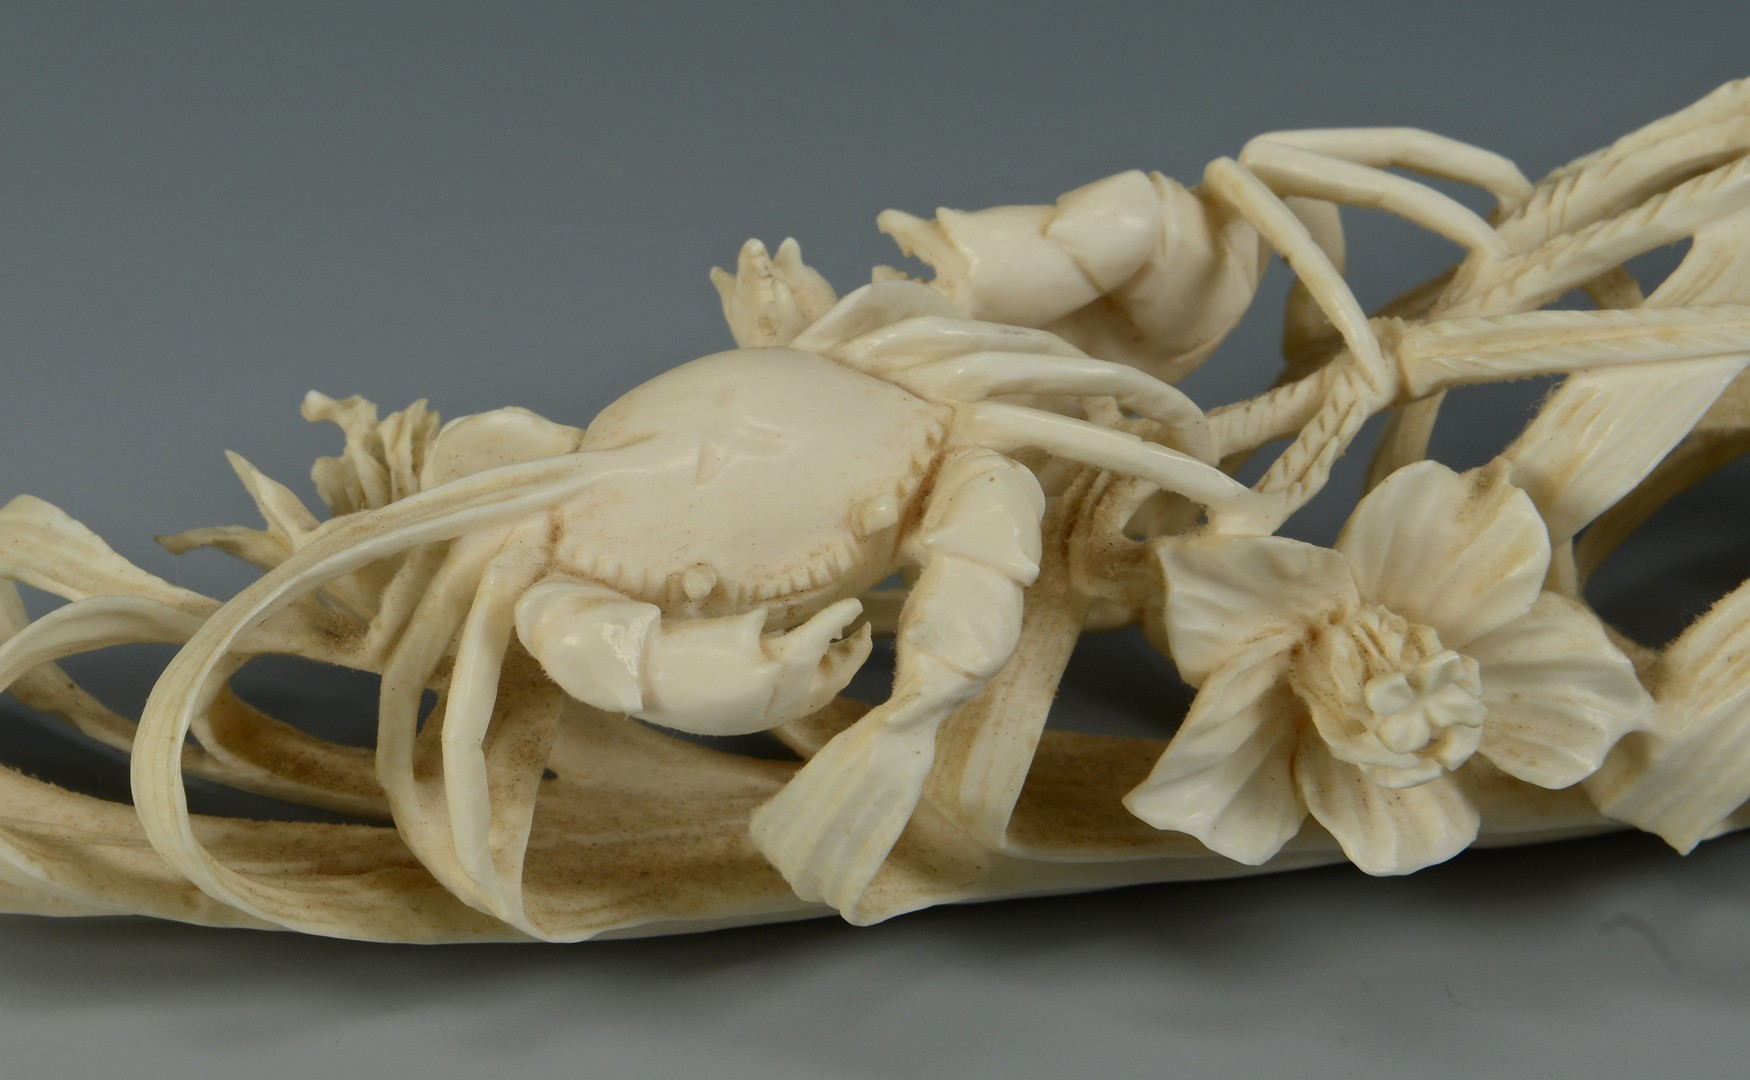 Lot 3383192: Chinese Carved Ivory Crab Basket